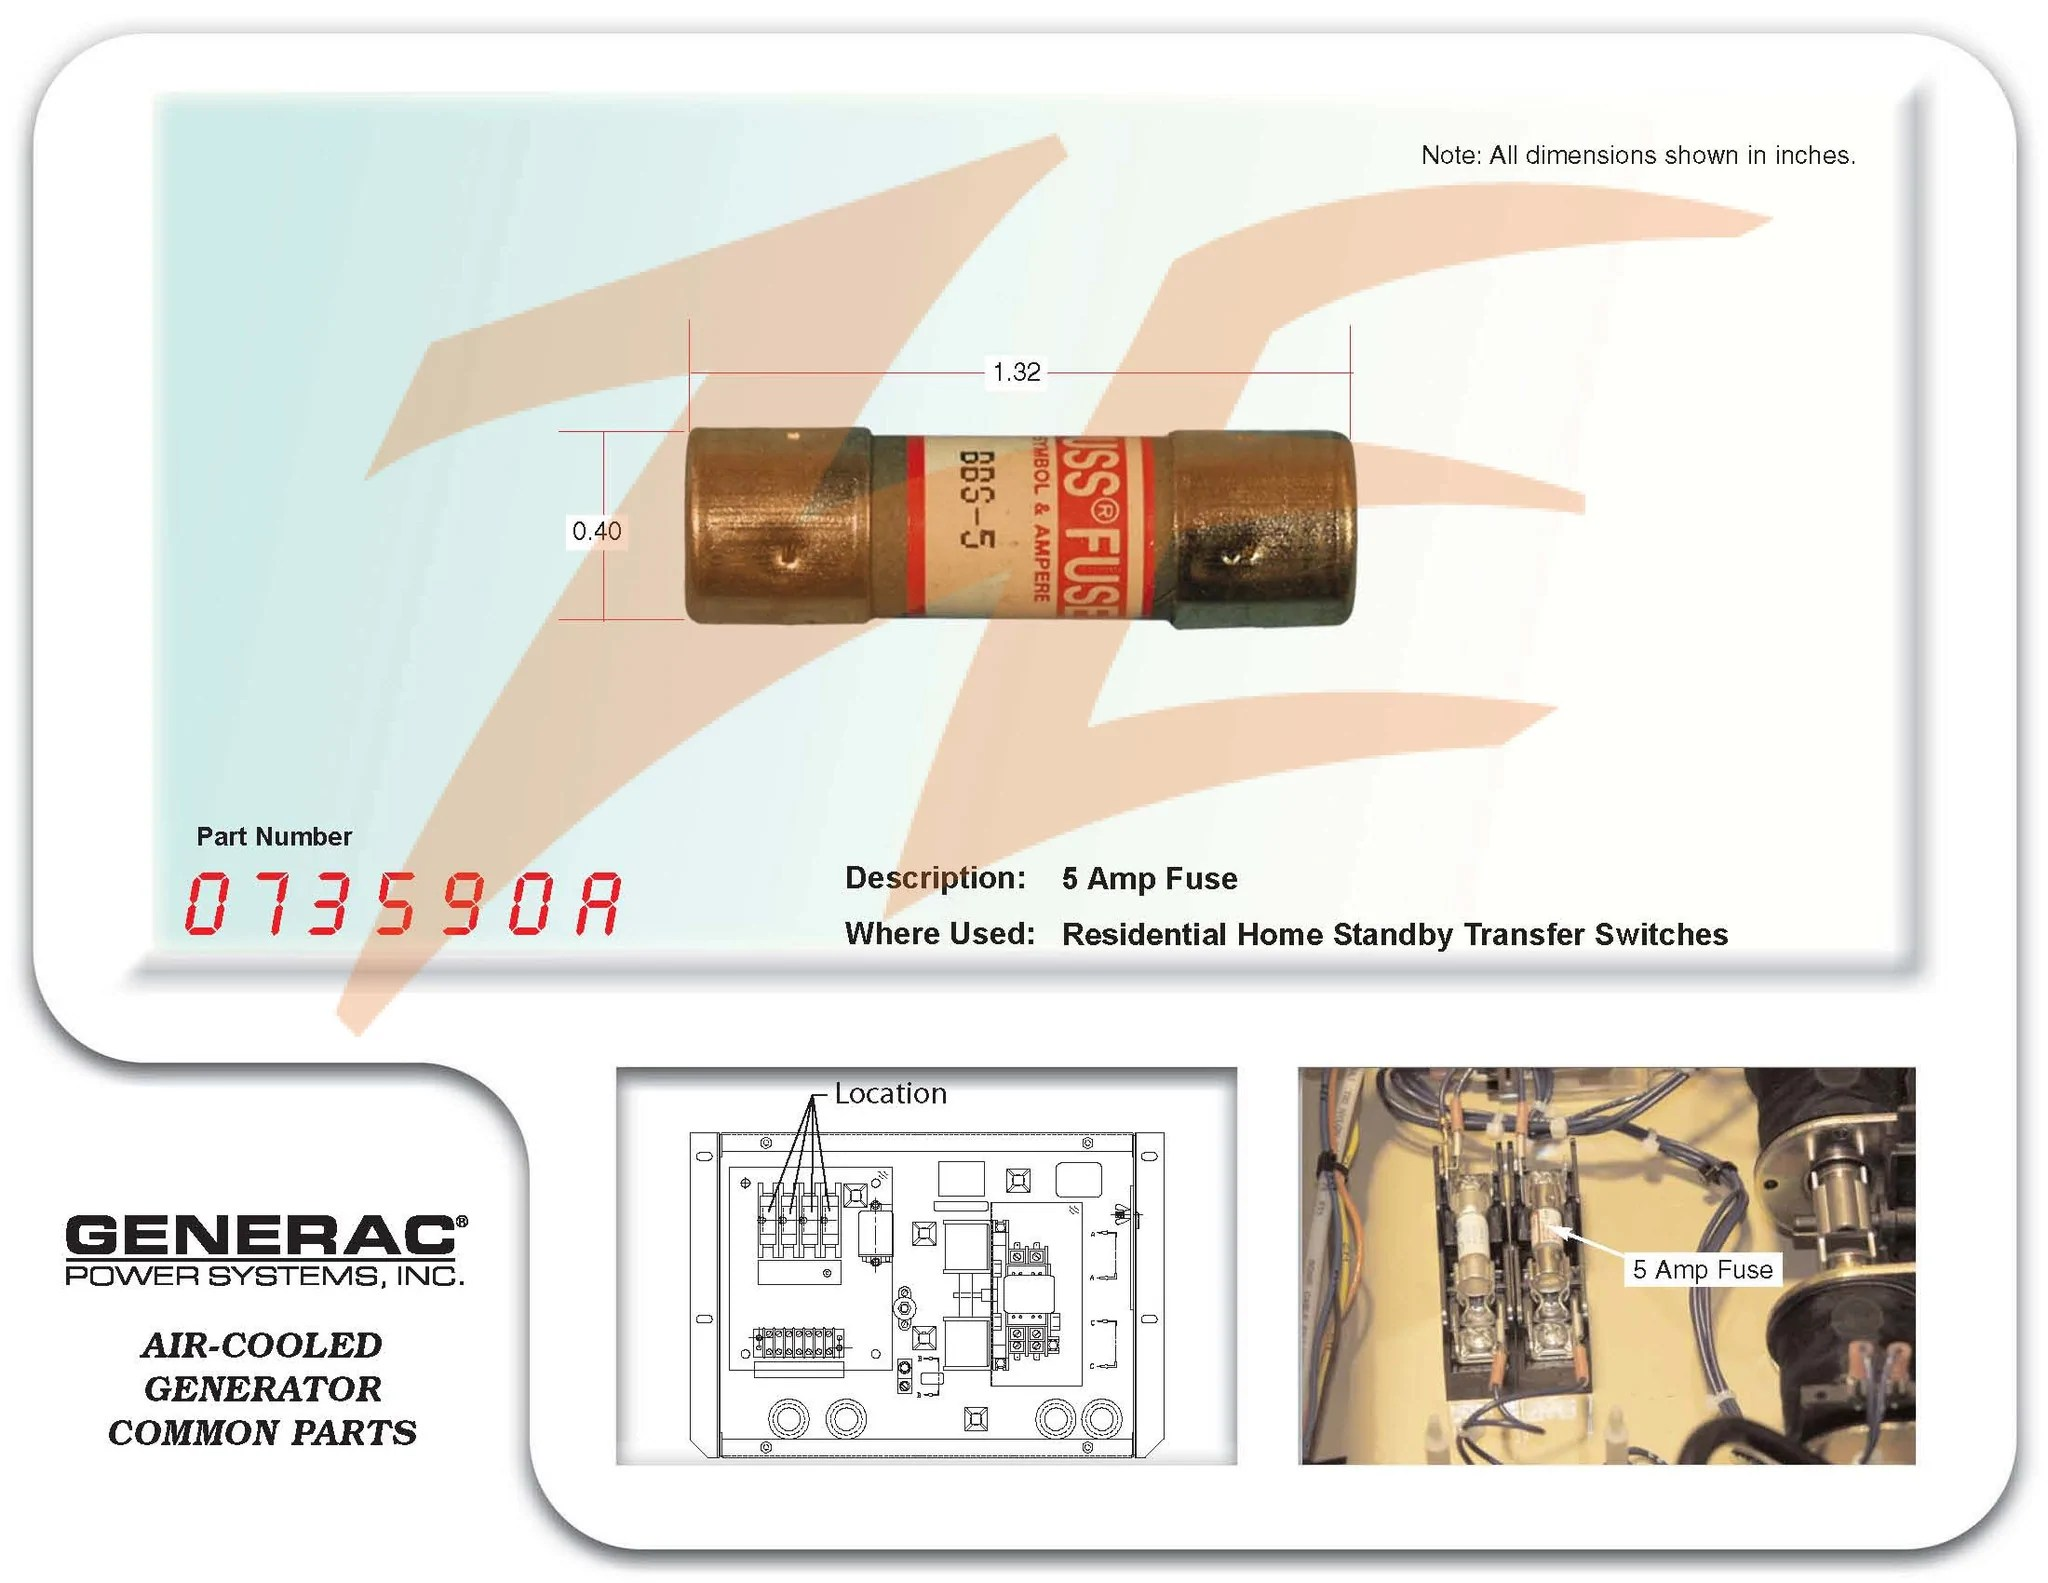 medium resolution of generac 073590a 5 amp buss fuse ziller electric home electrical box transfer switch fuse box